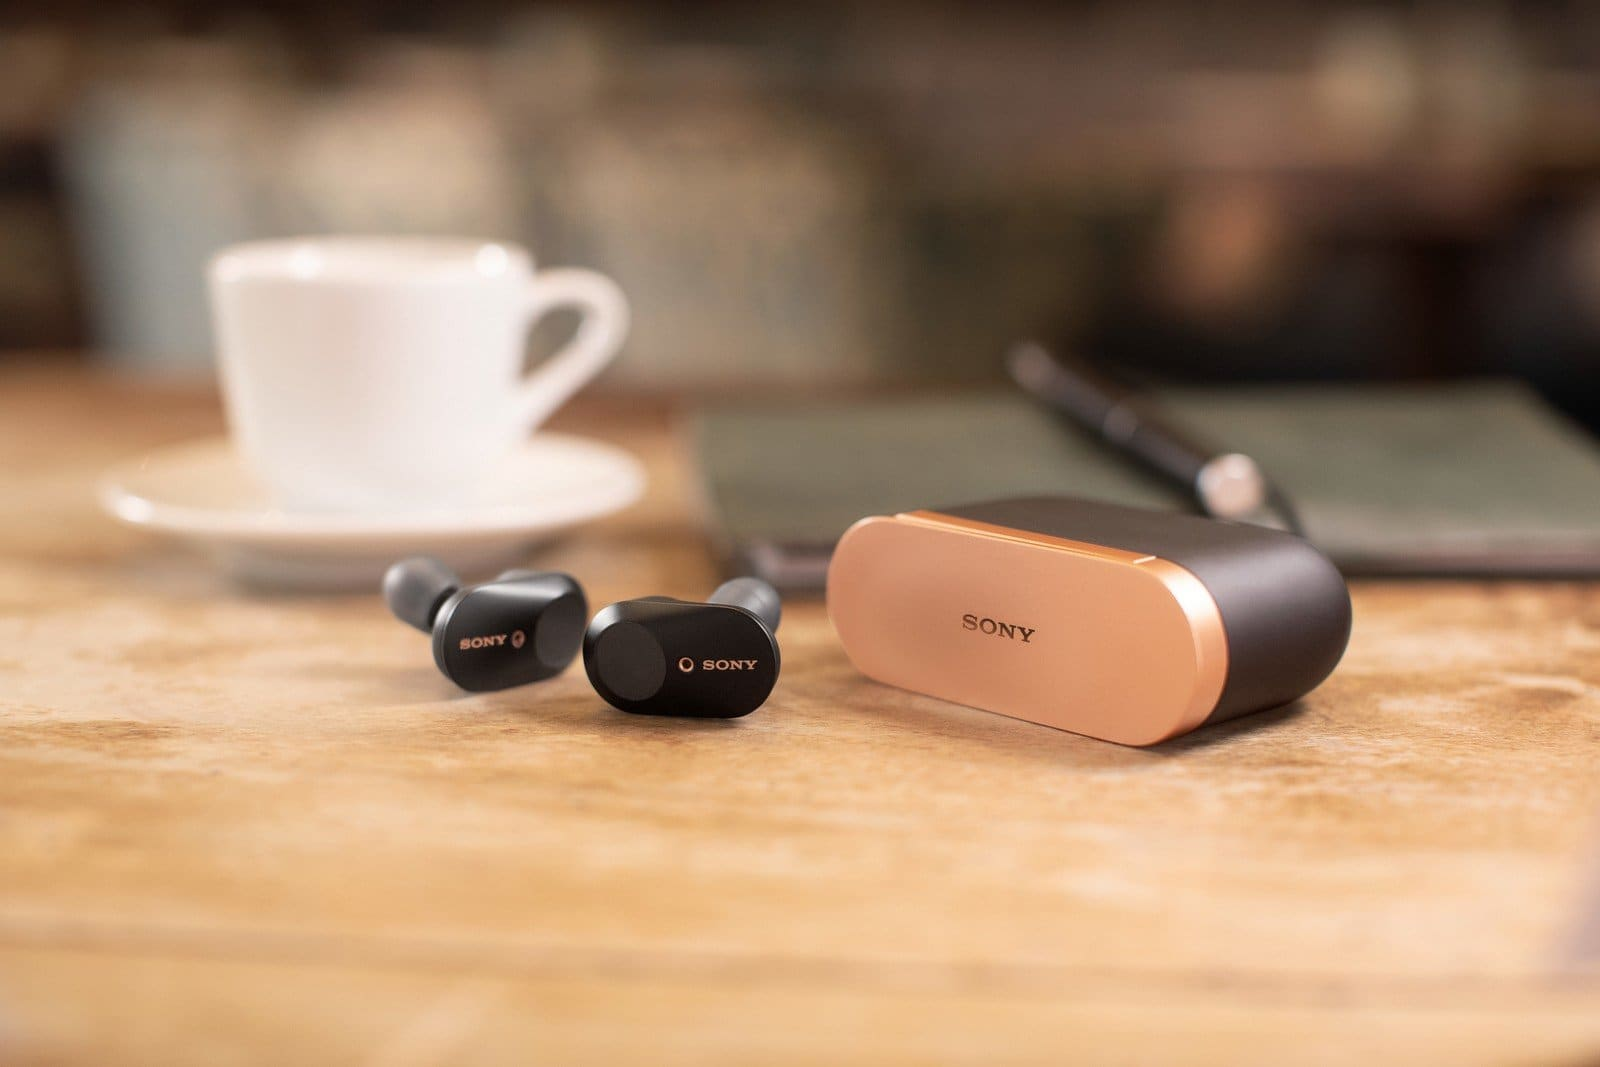 Sony wireless earbuds